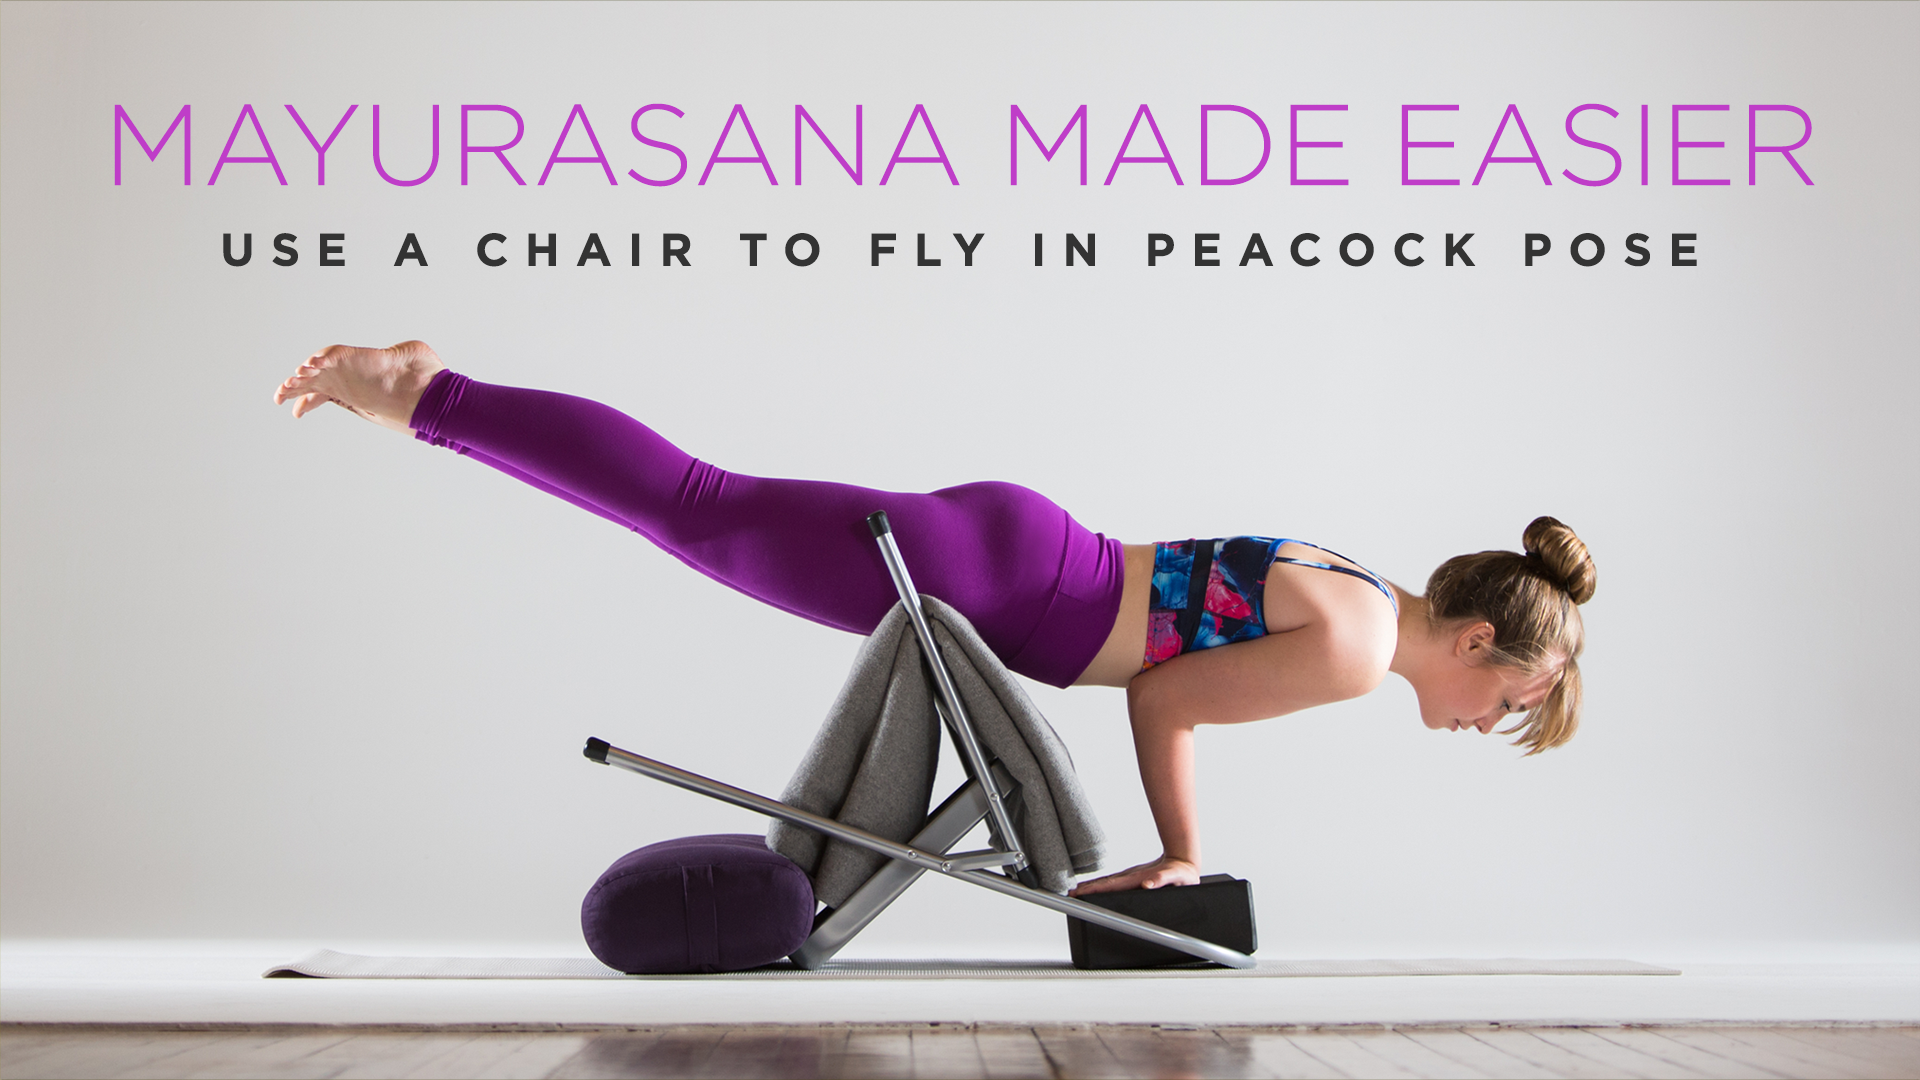 Mayurasana Made Easier Use A Chair To Fly In Peacock Pose Quick Yoga Workout Restorative Yoga Learn Yoga